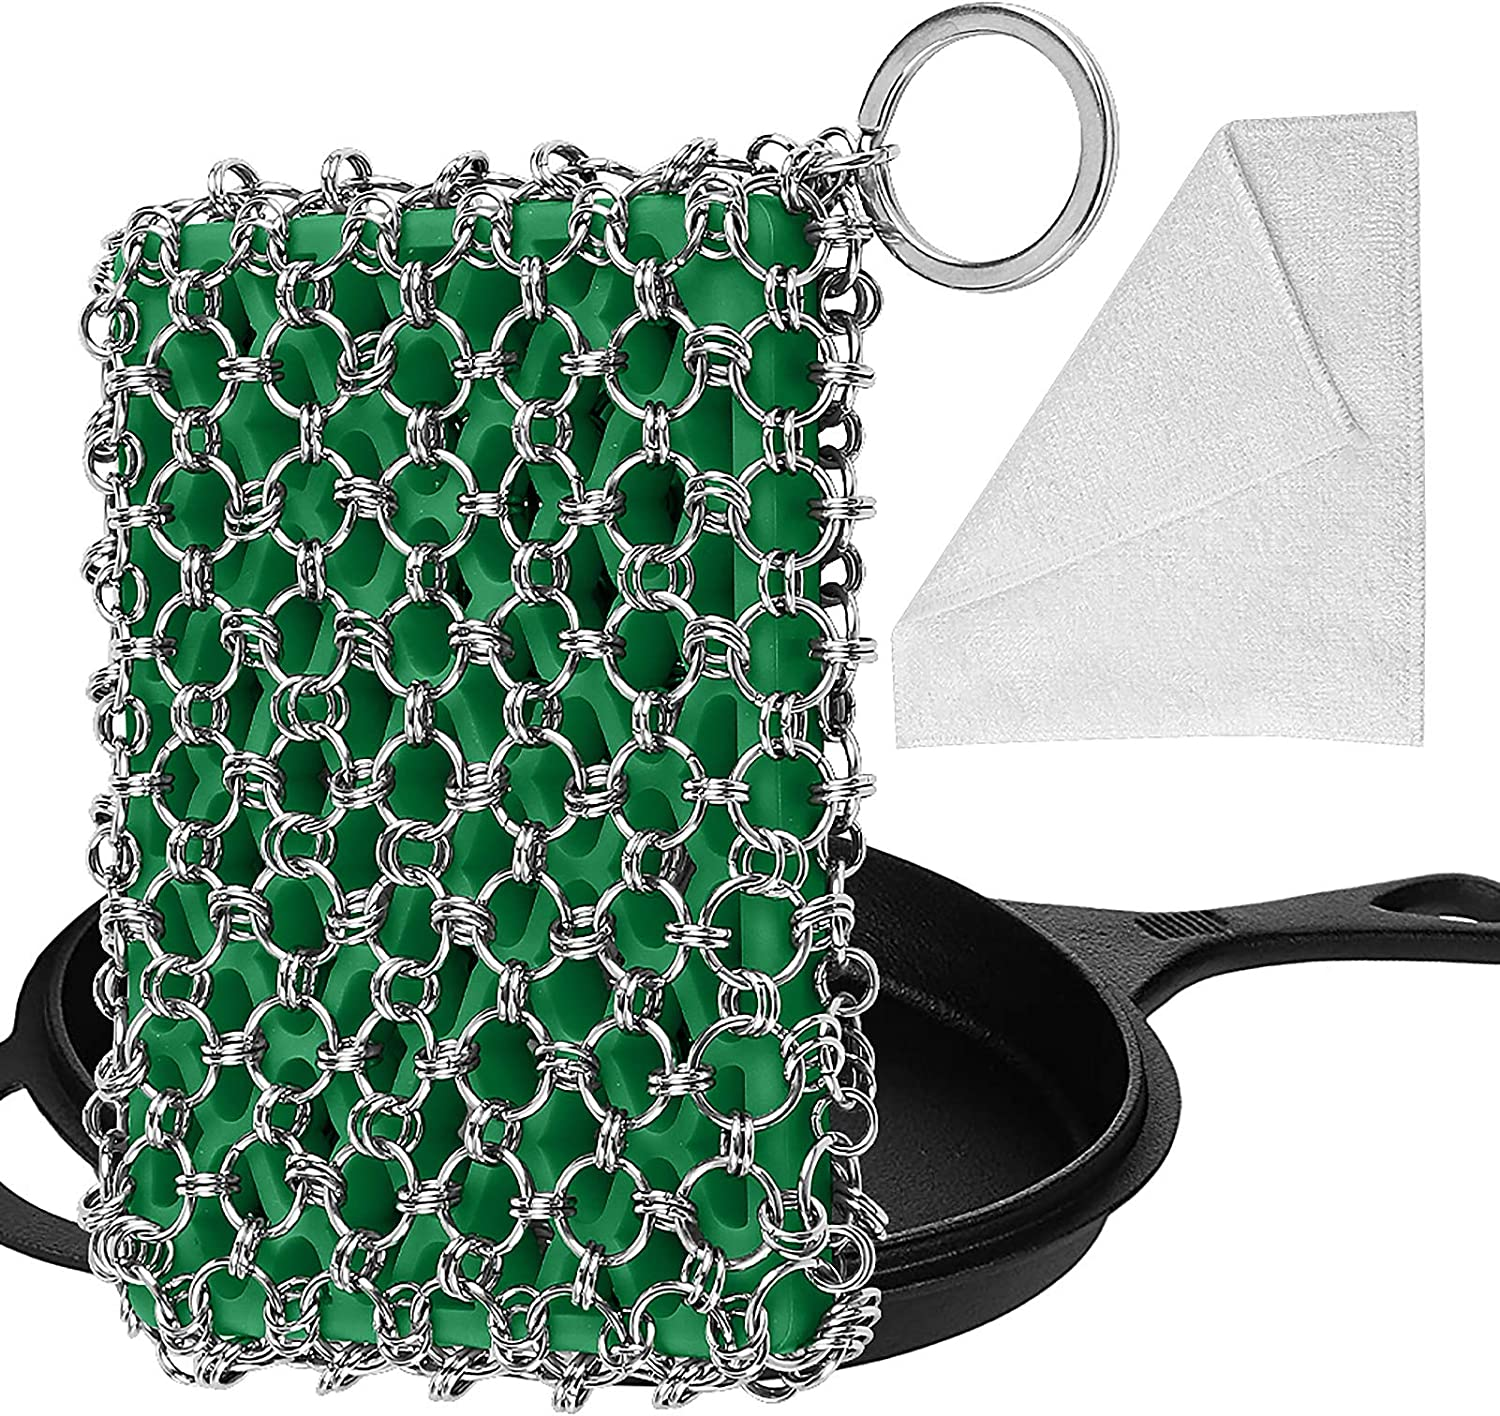 Herda Cast Iron Skillet Cleaner,Upgraded Chainmail Scrubber Set Silicone Insert with Bamboo Fiber Cloth,316 Stainless Steel 3D Chain Metal Scrubber Scraper for Castiron Pan,Griddle,Baking Pan (Green): Health & Personal Care